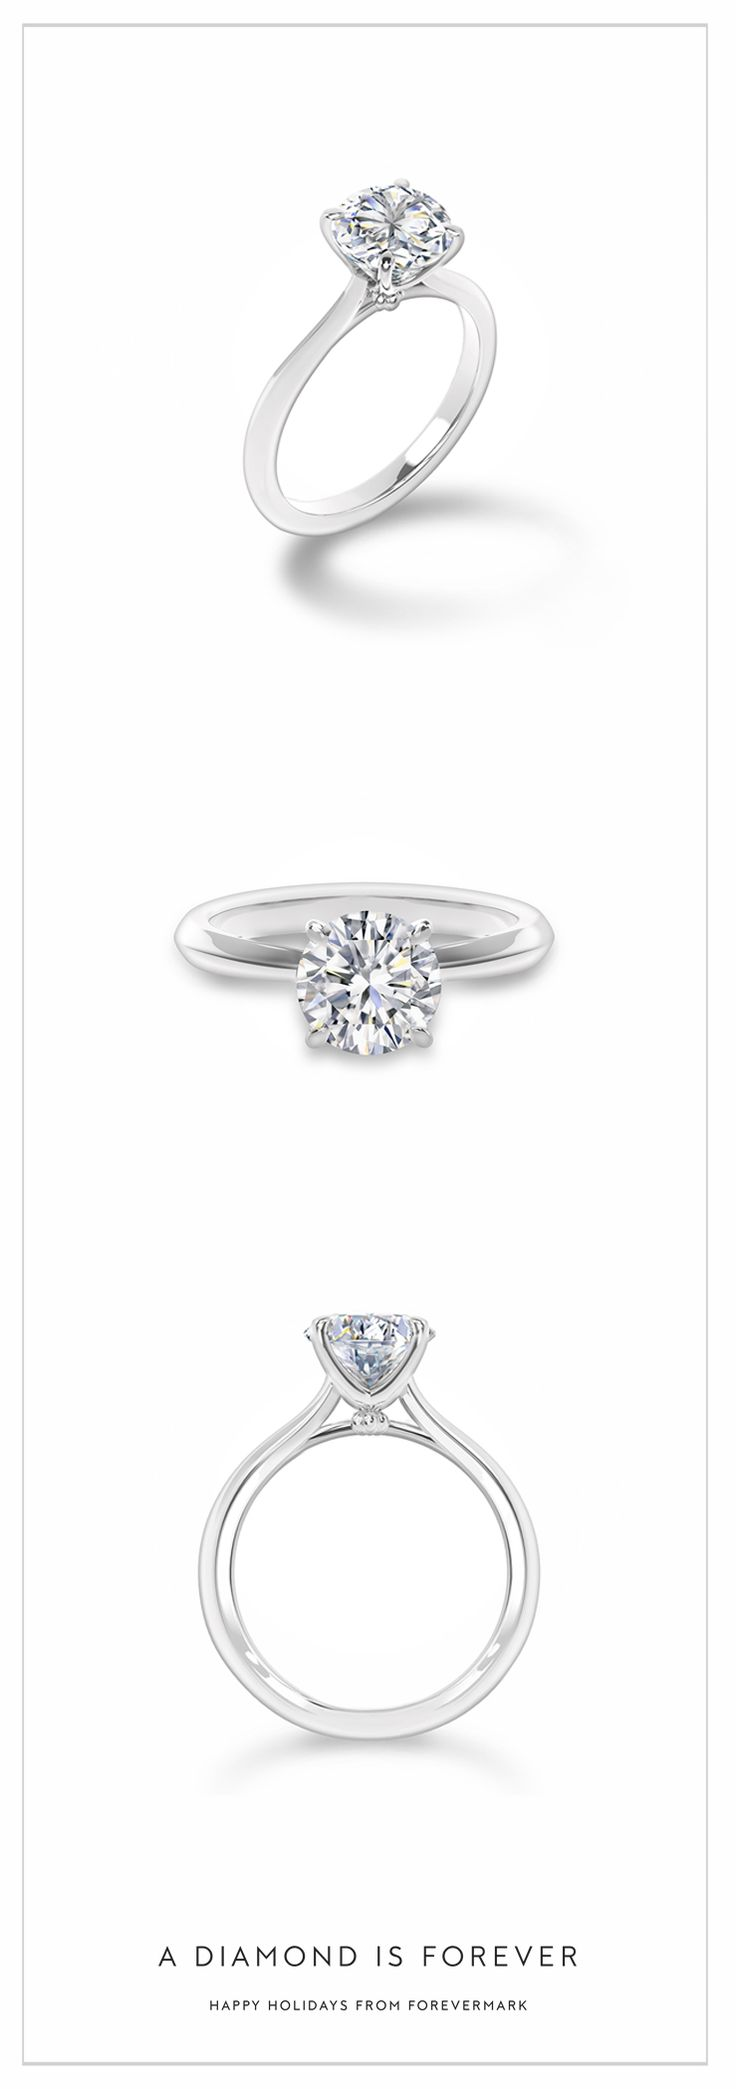 monogram wedding simply ring tacori engagement rings